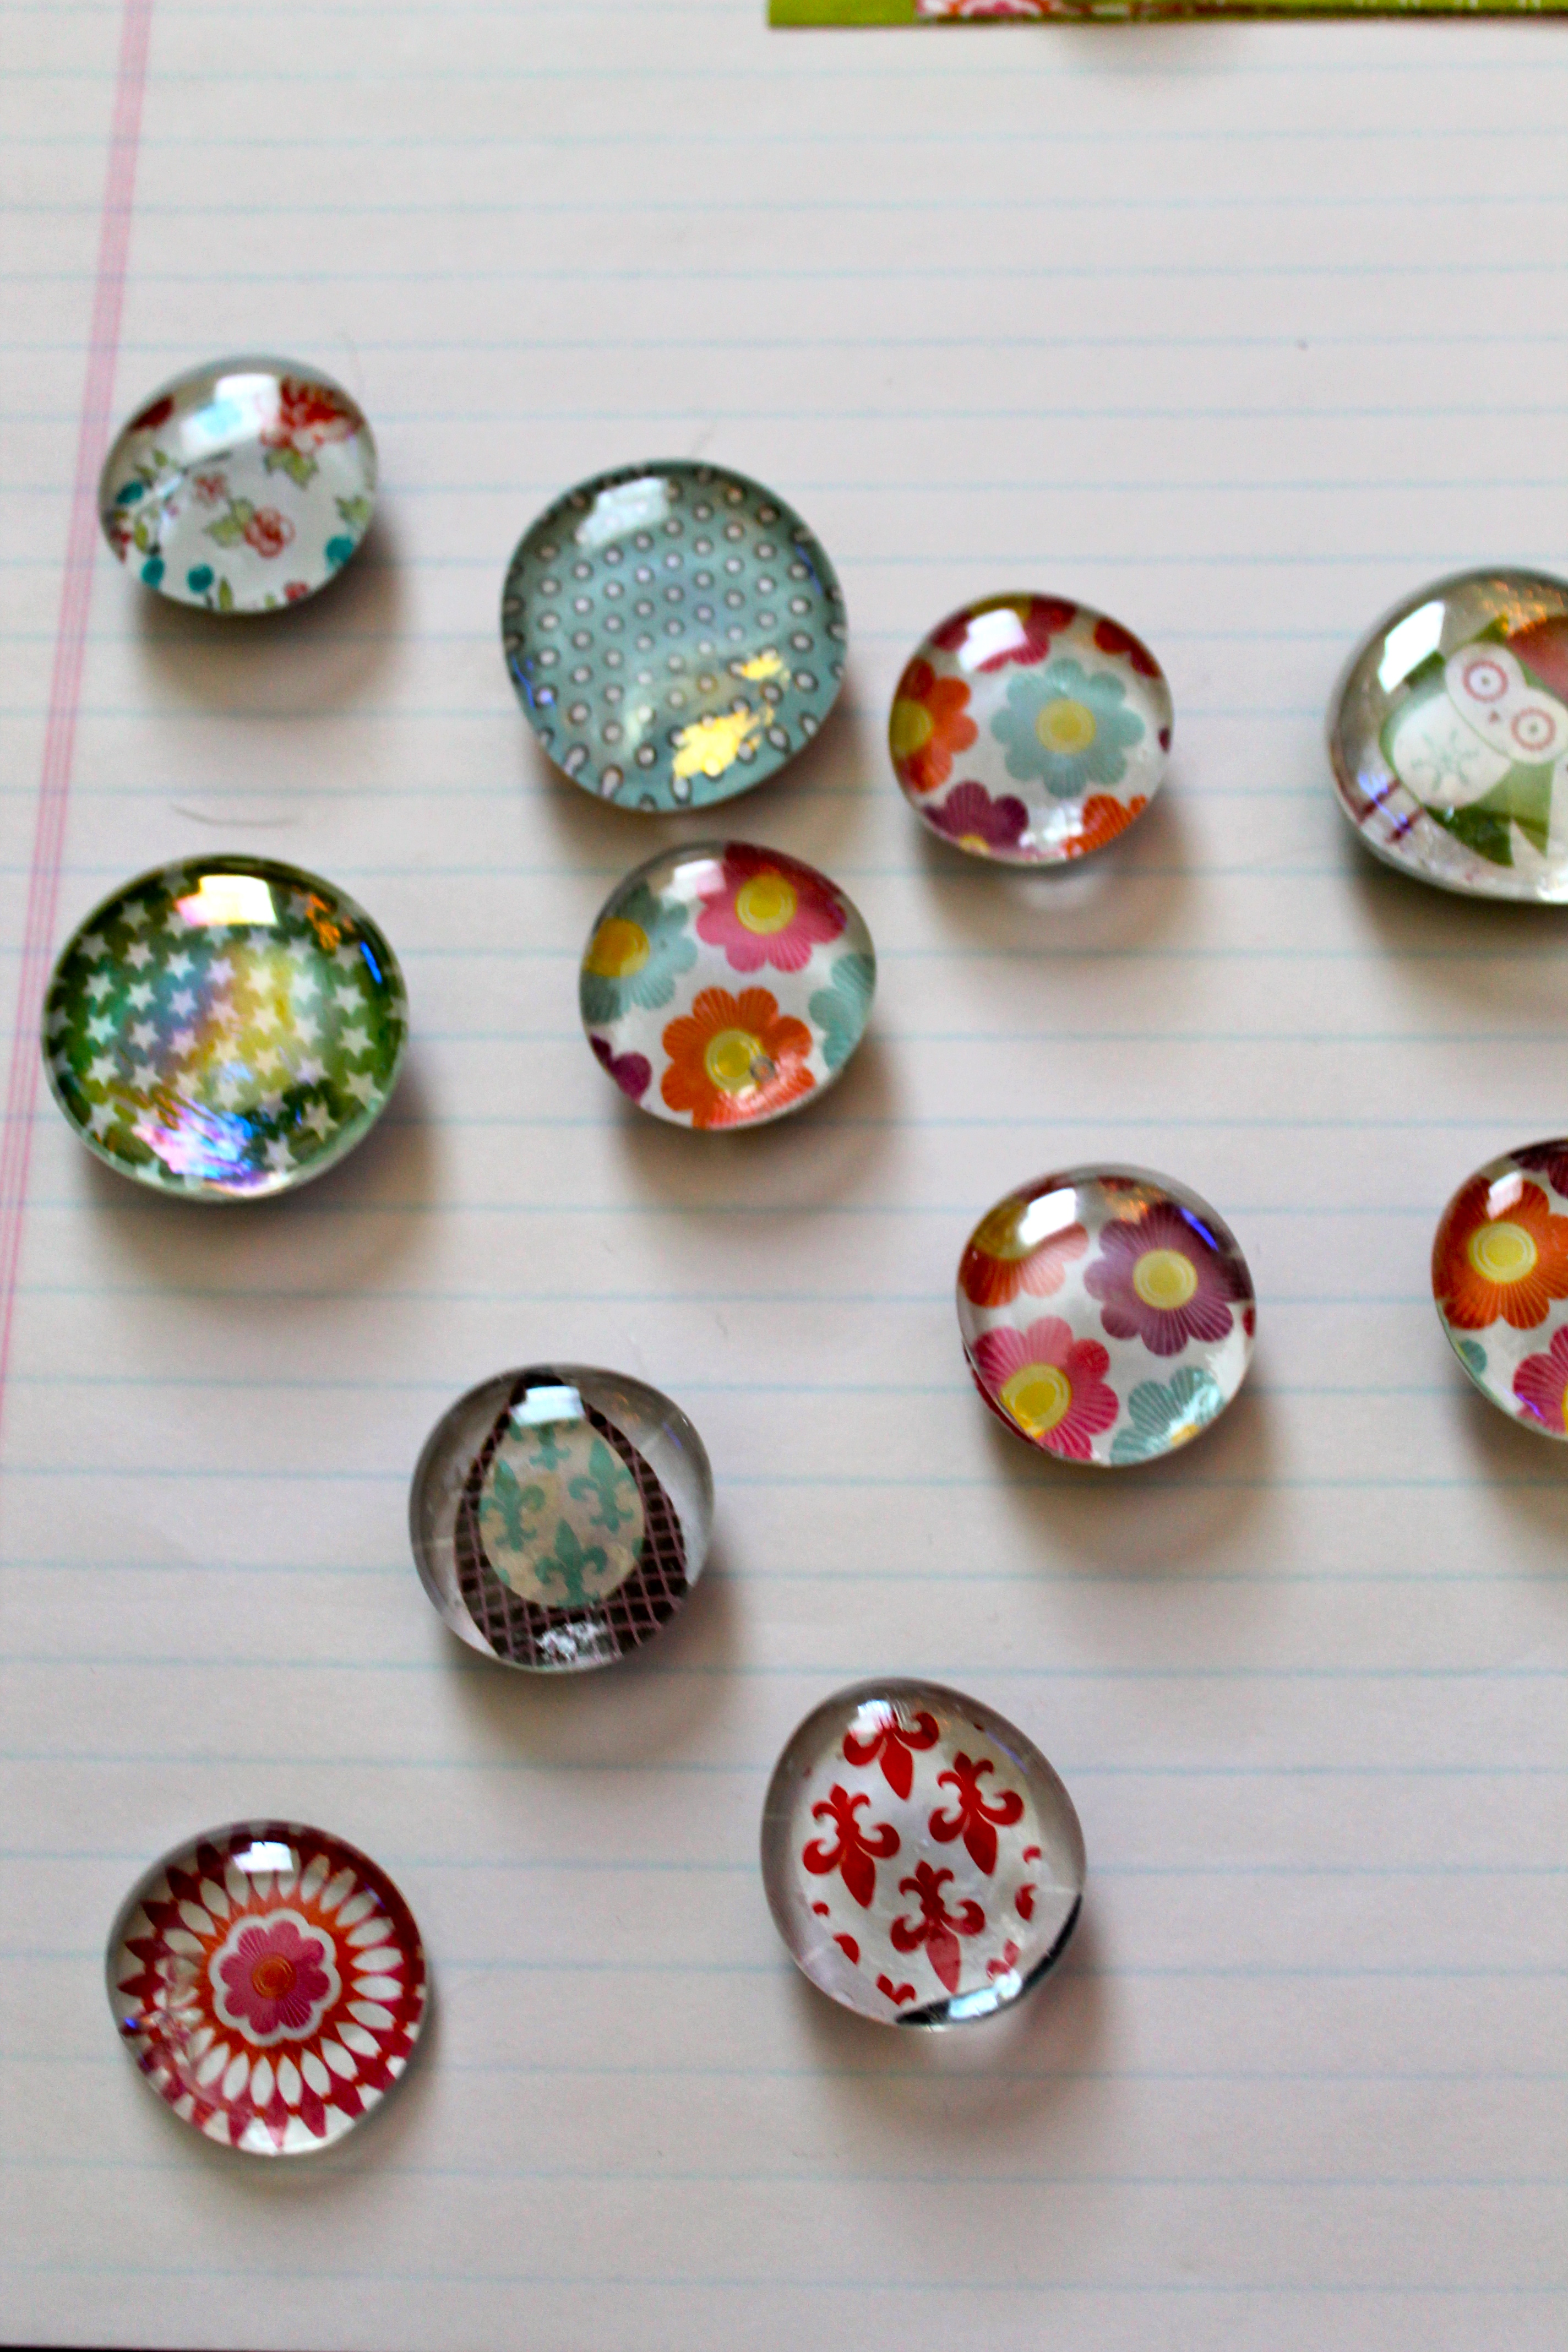 Glass Pebble Magnets How To Make Personalize Package Price Sell